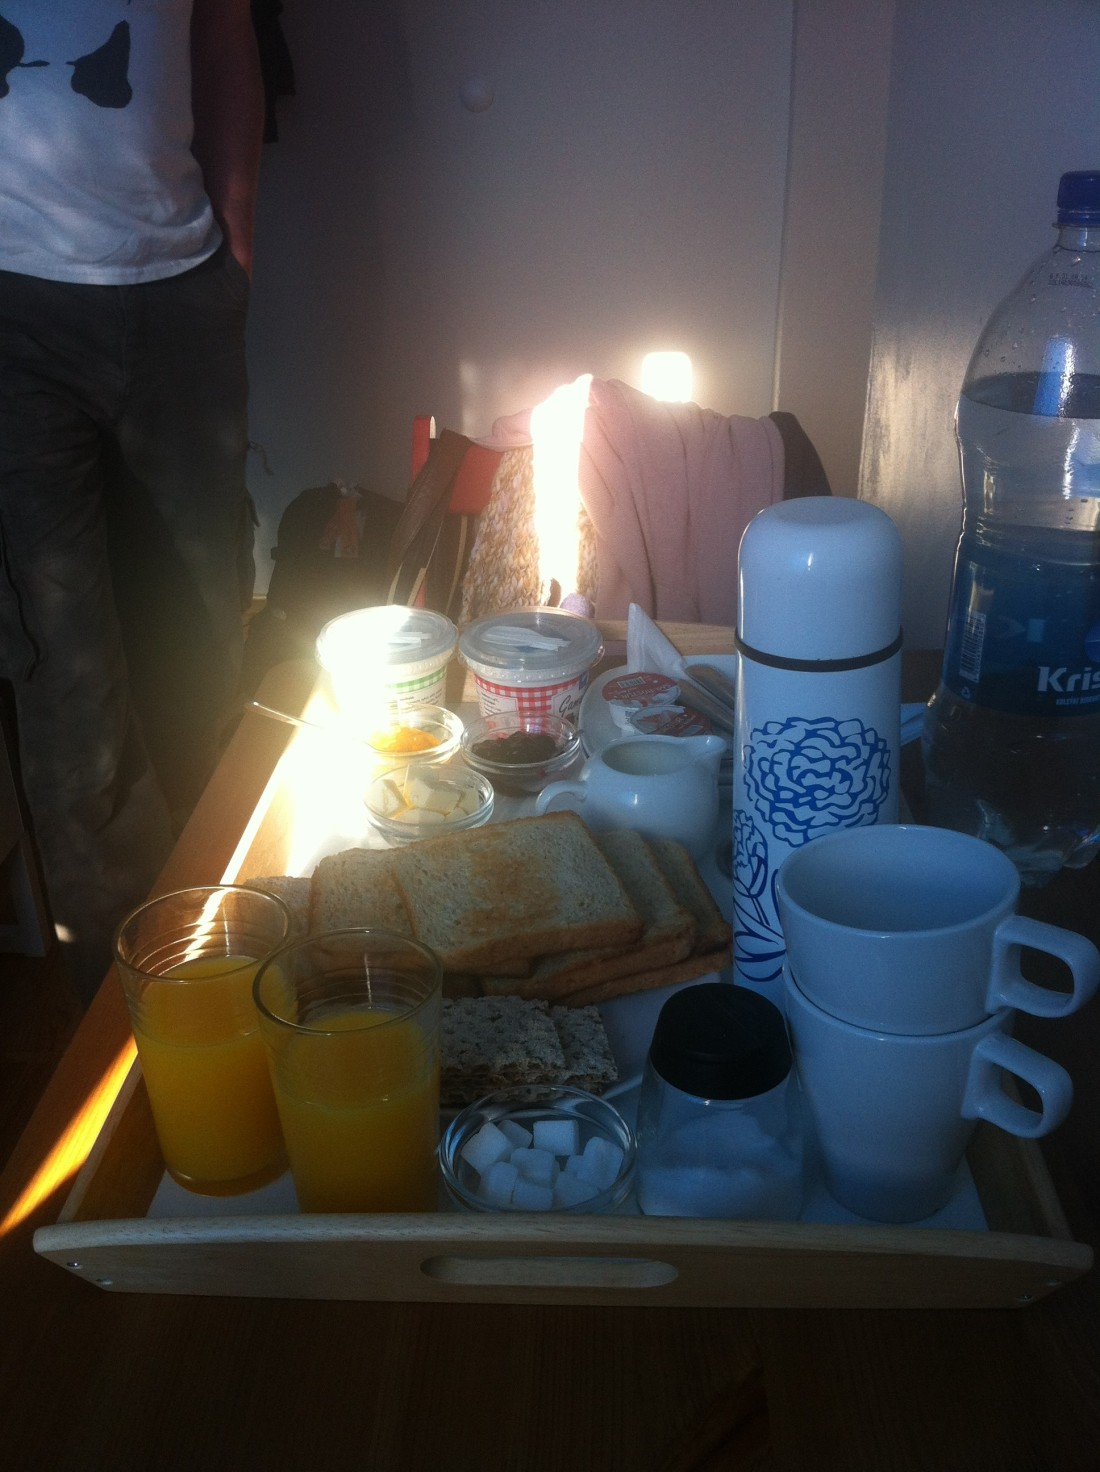 Breakfast, homemade and served in the room.